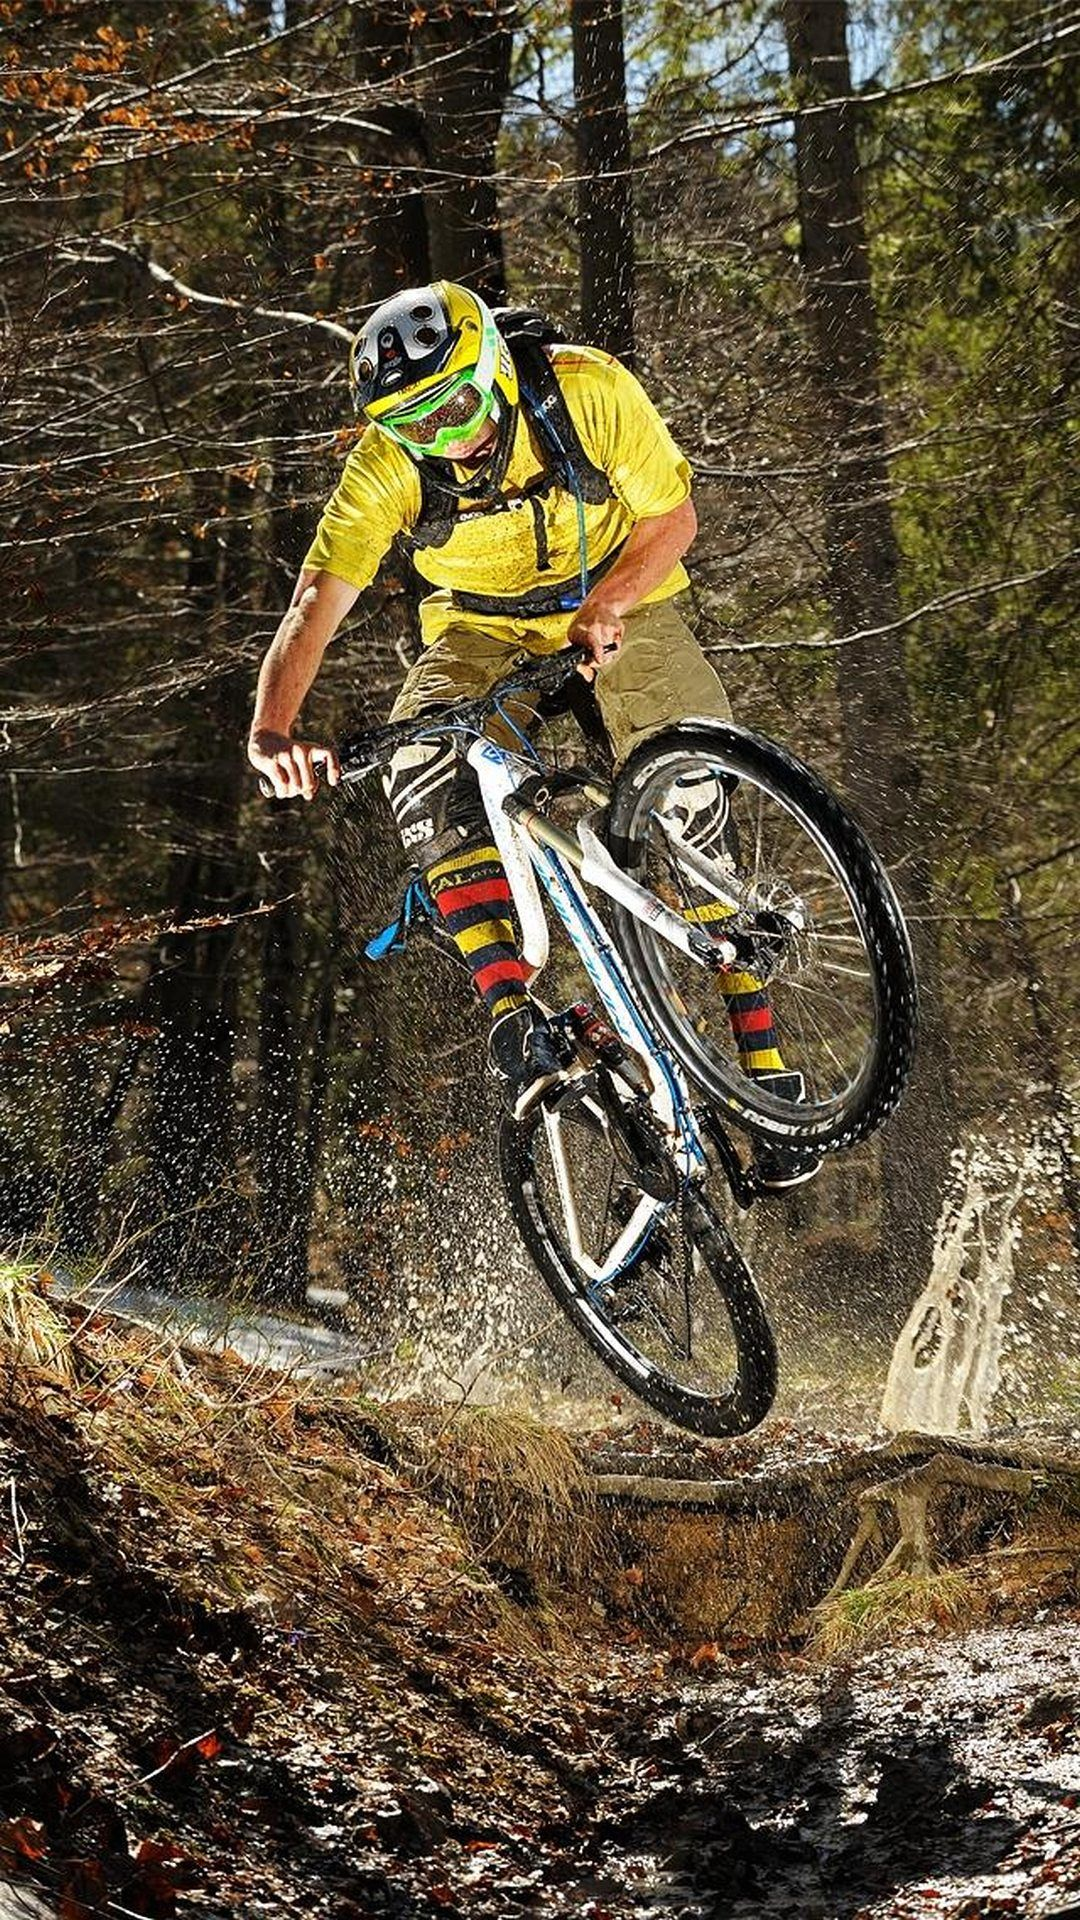 Tap And Get The Free App Men S World Motorcyclist Colorful Extreme Sport Enduro Mototrial For Guys Iphone 6 Plus Wallpaper Iphone 6 Plus Iphone 6 Wallpaper